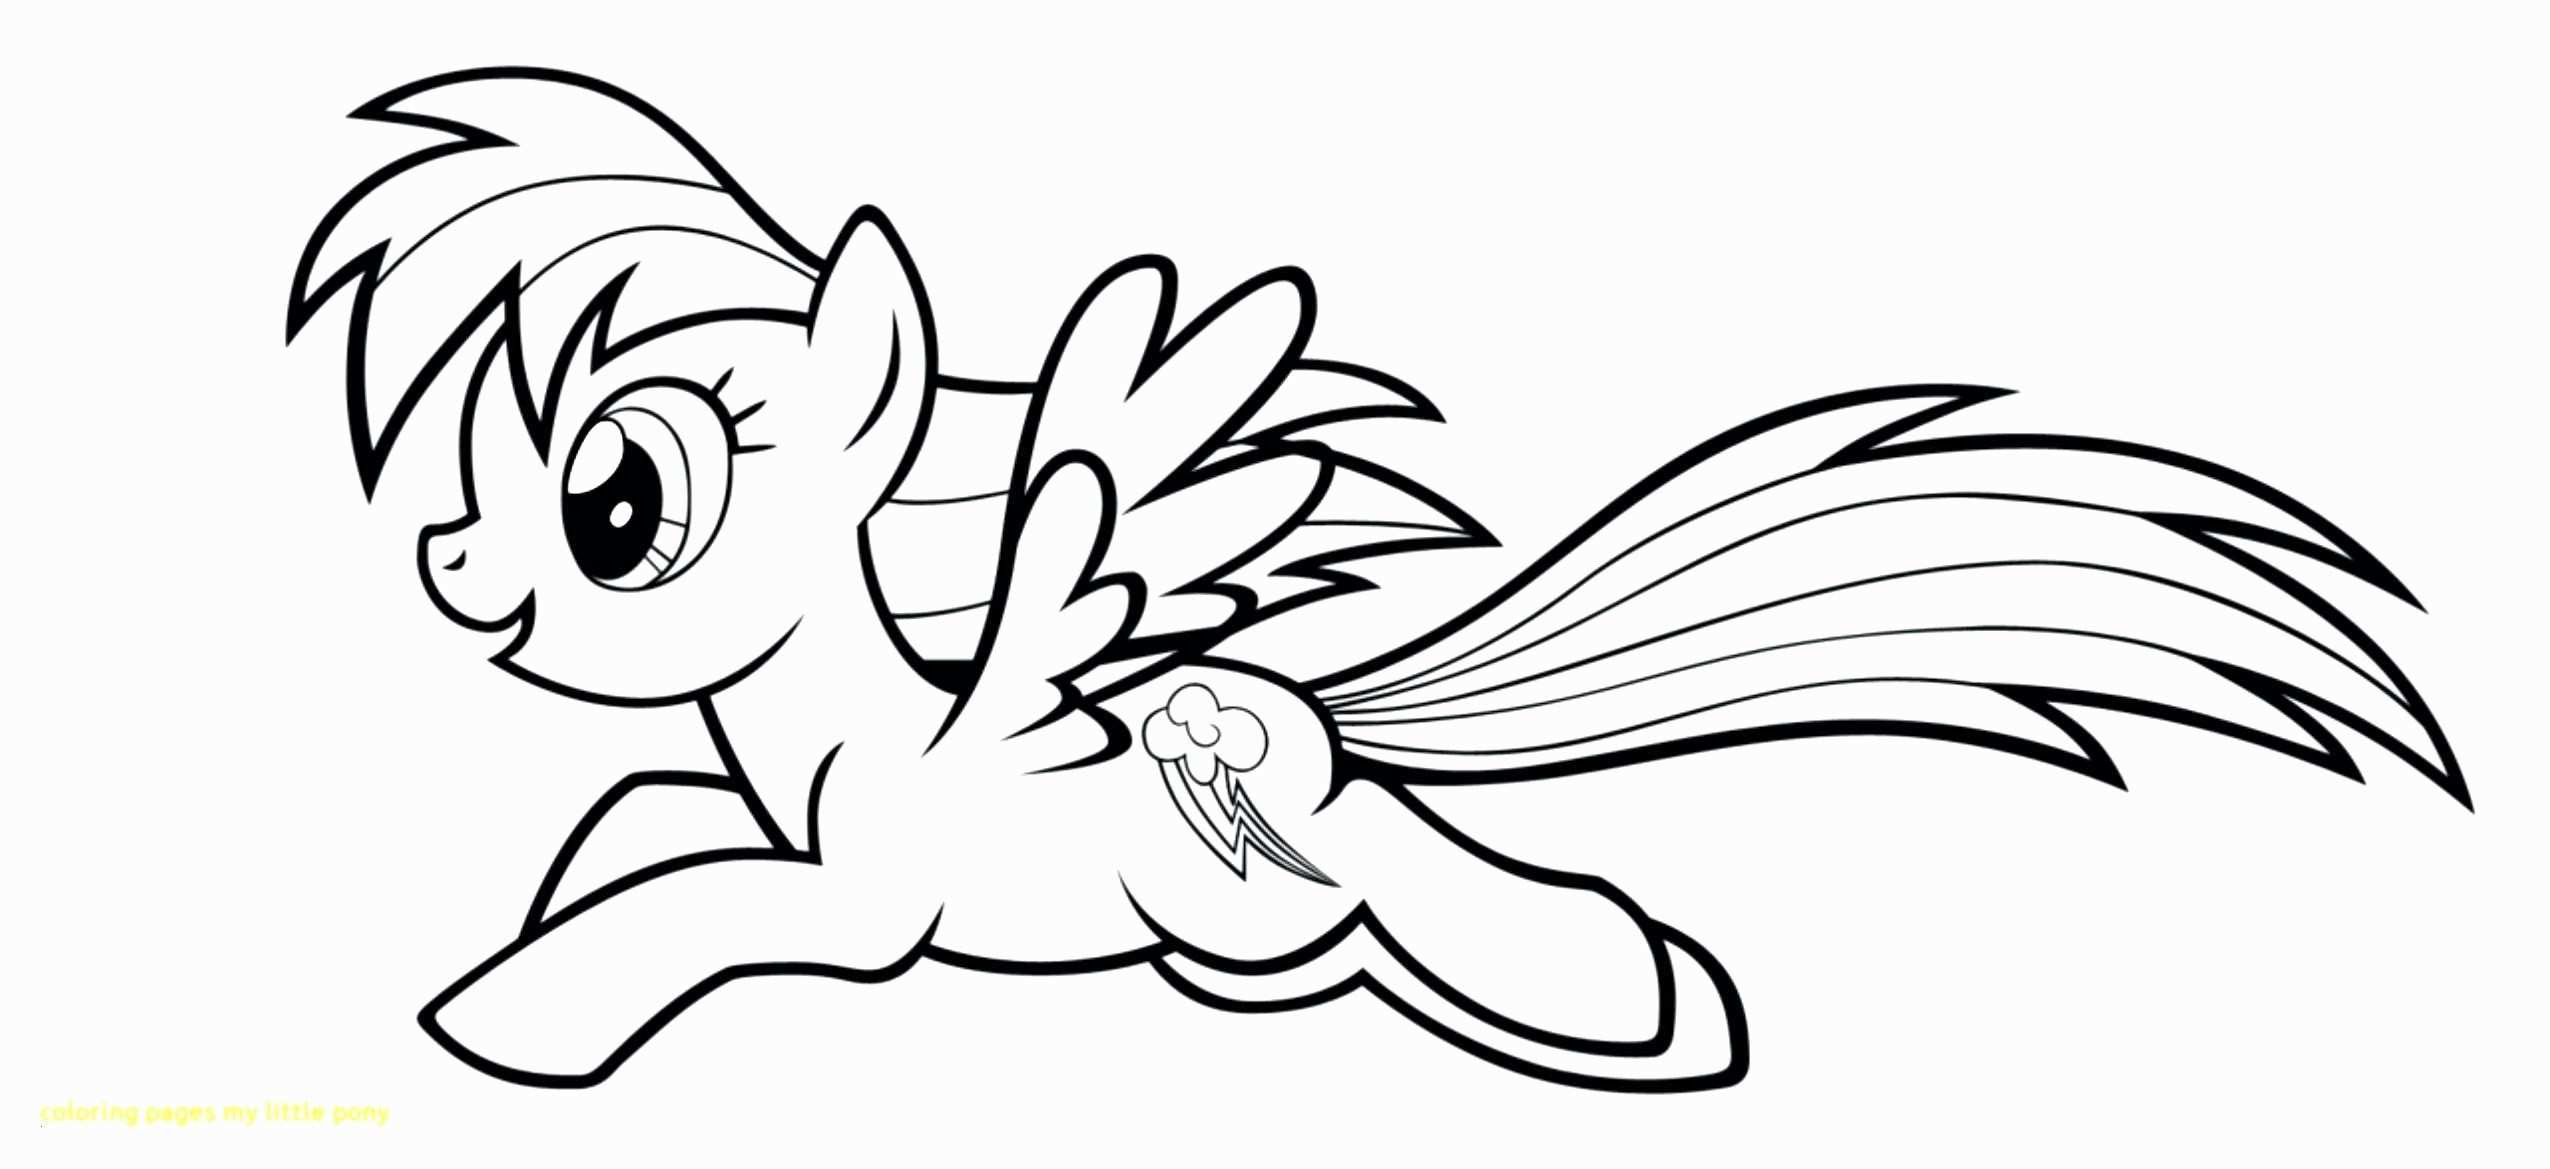 Rainbow Dash Ausmalbilder Genial Rainbow Dash Coloring Pages New My Little Pony Coloring Pages Best Das Bild